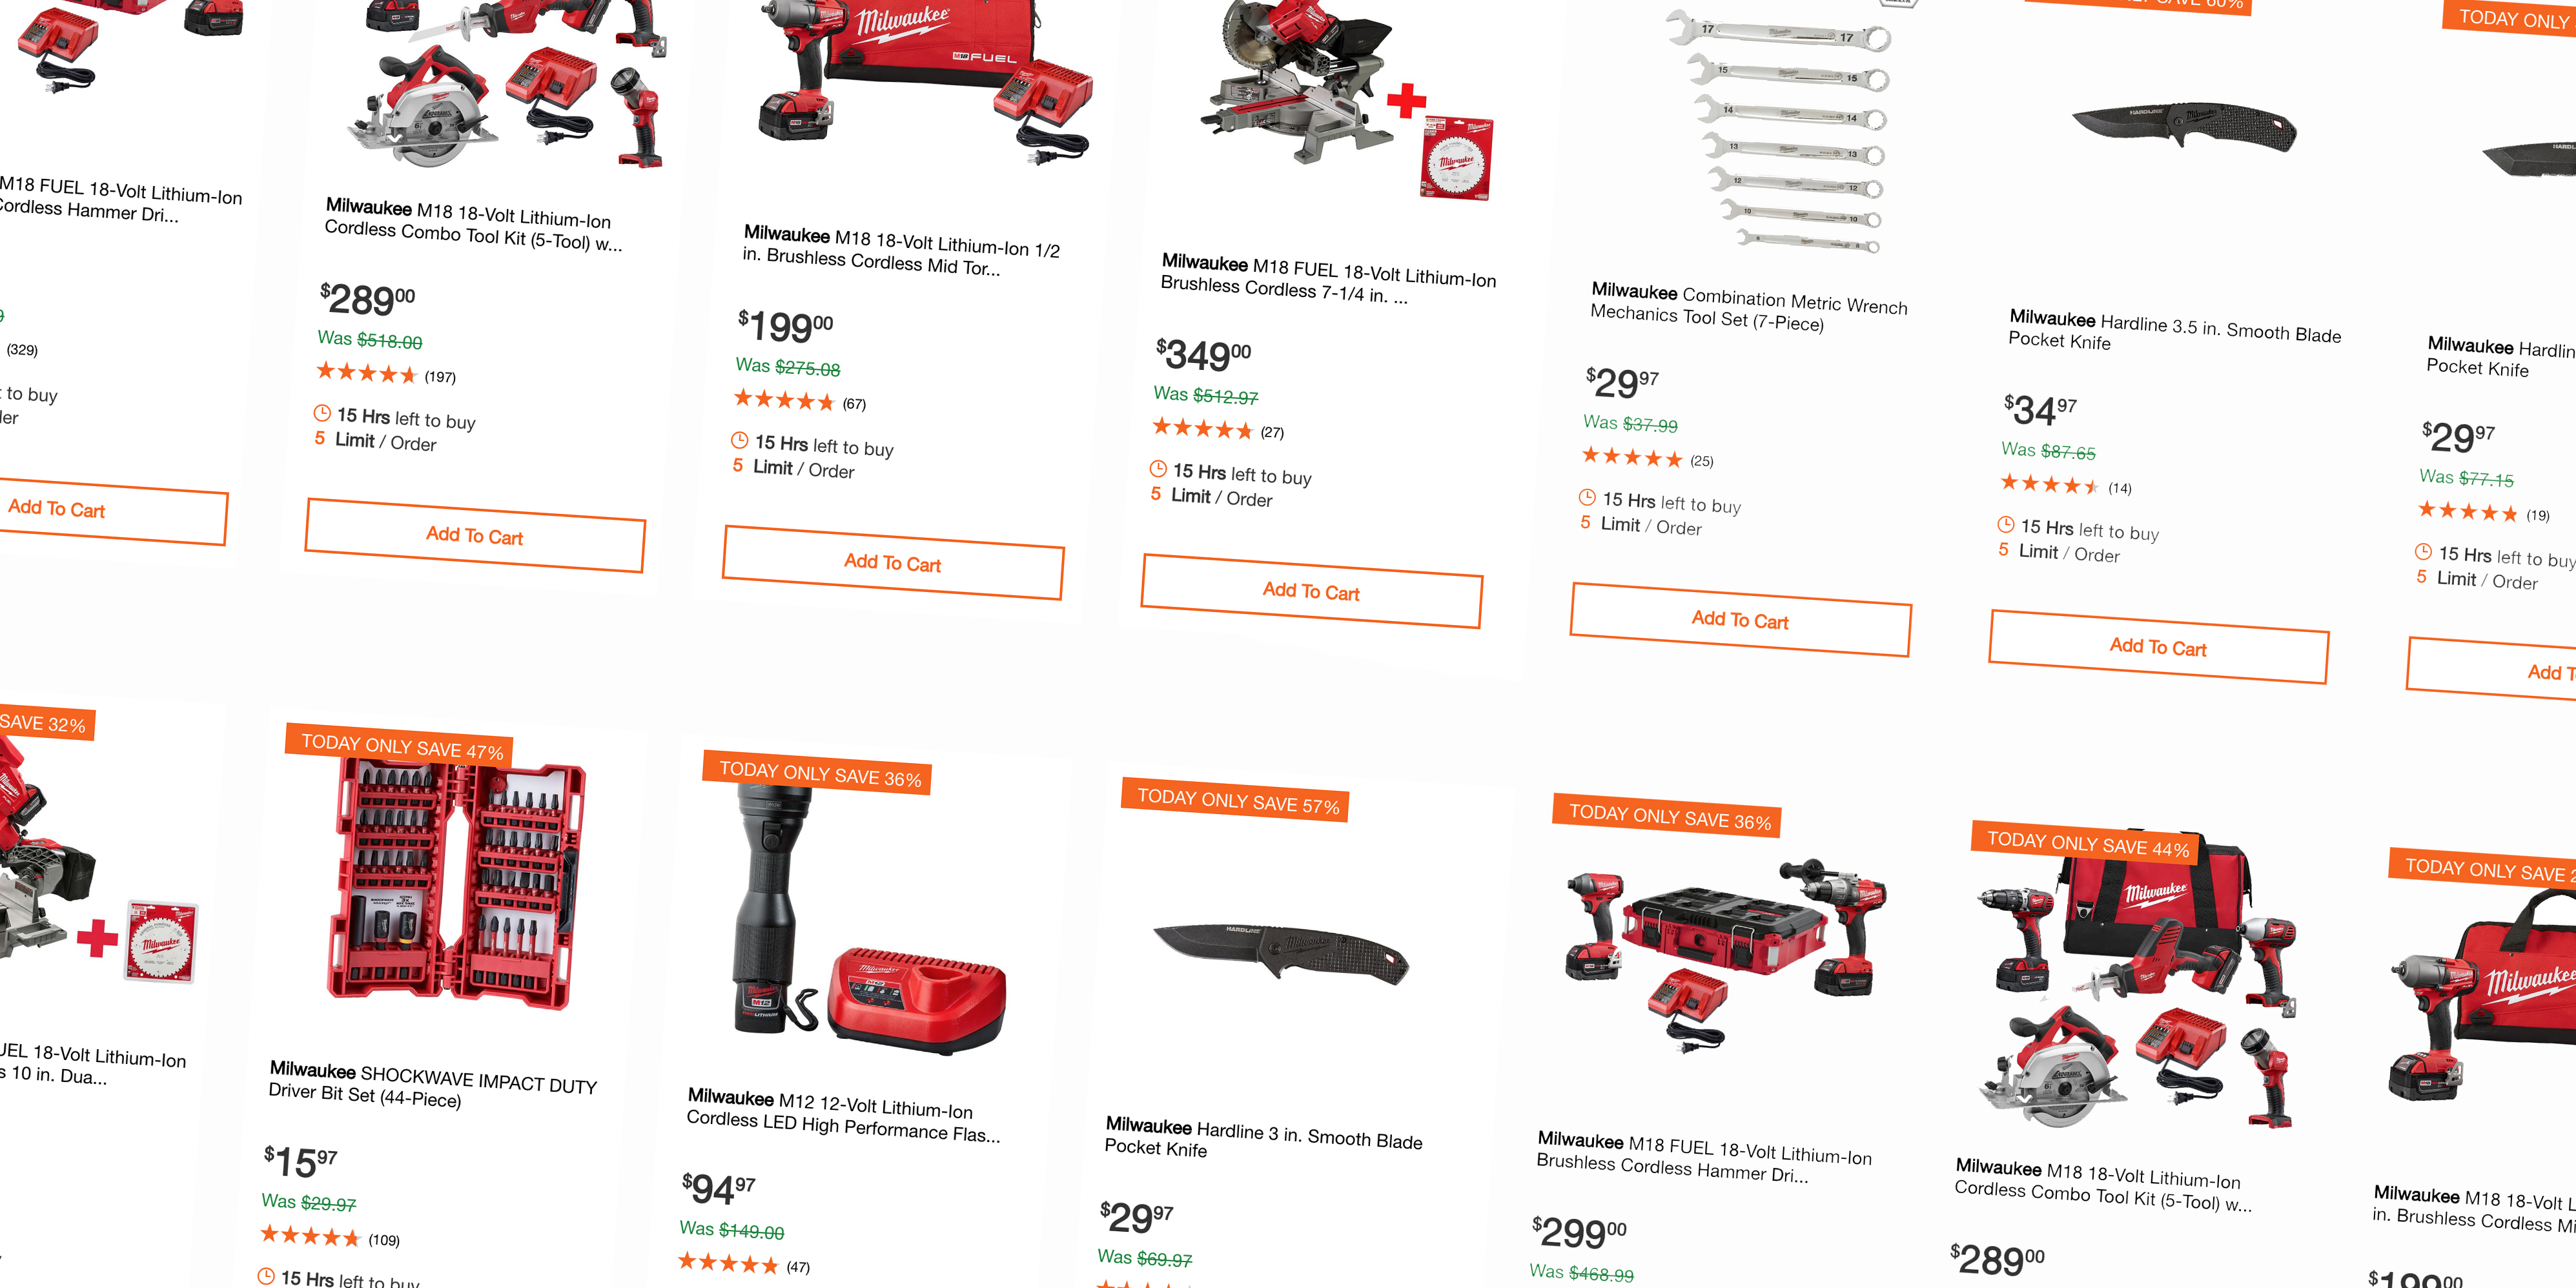 Home Depot's 1-day Milwaukee power tool sale includes pocket knives from $25